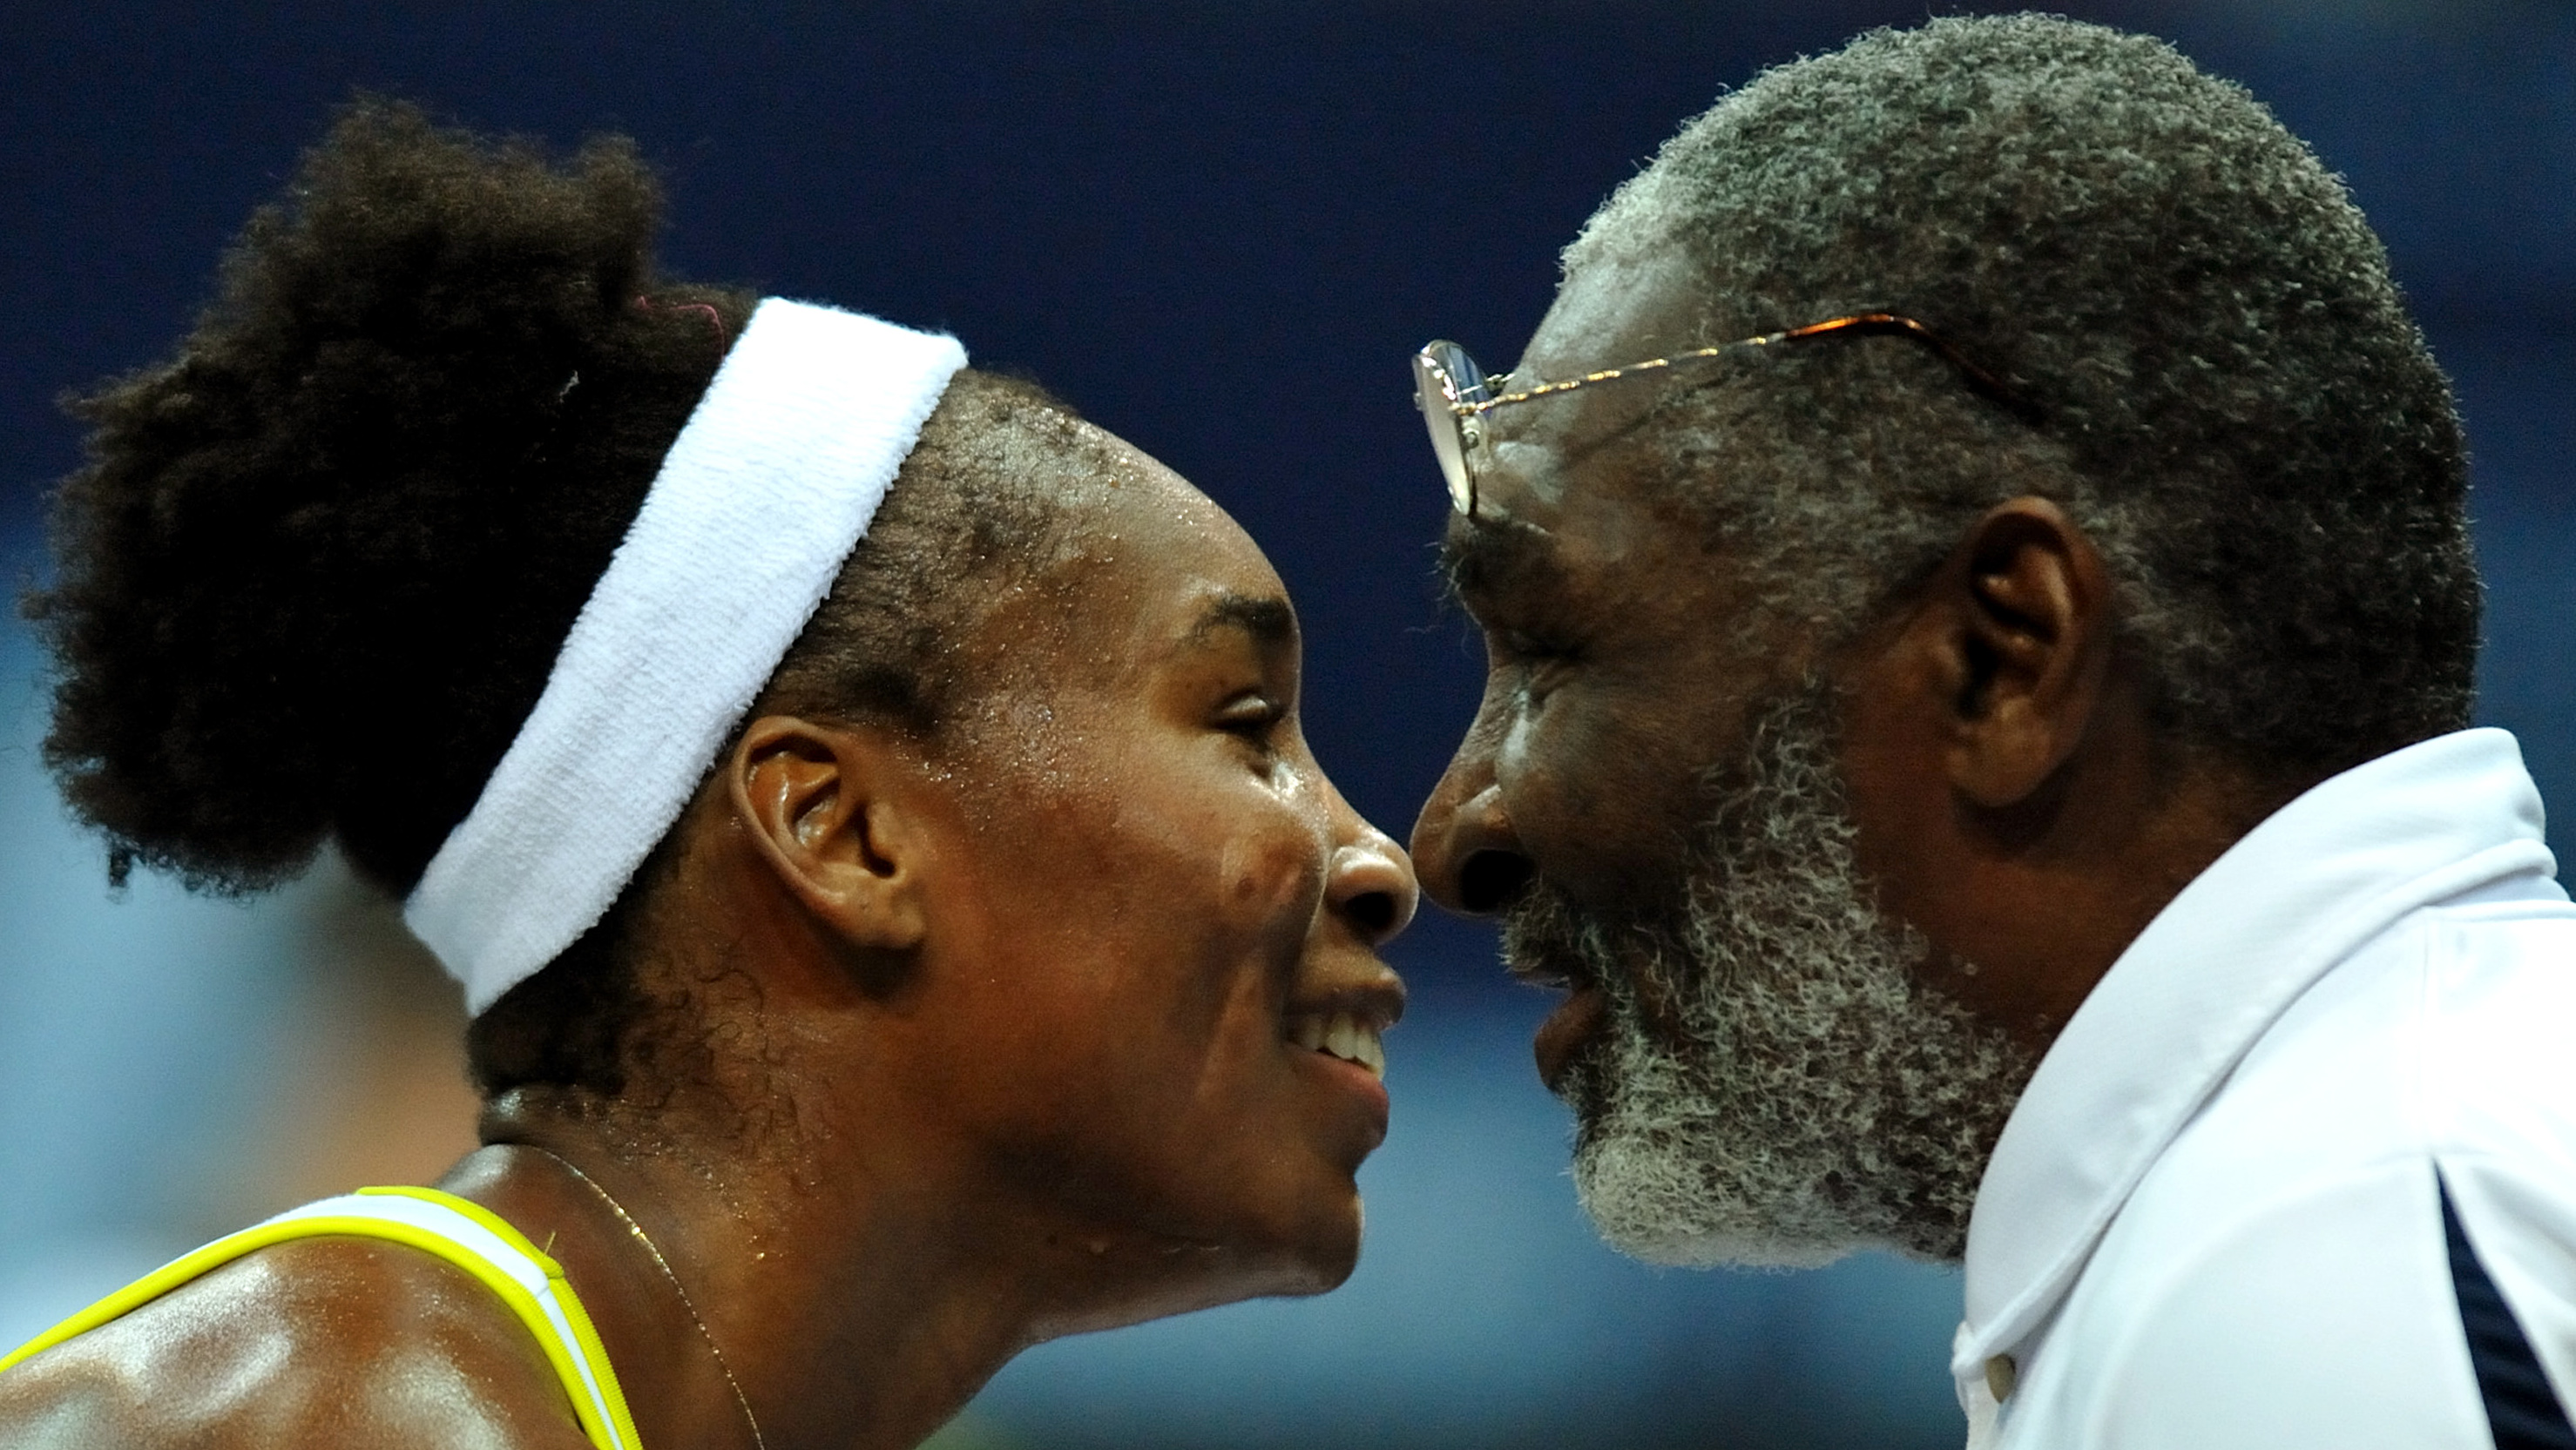 Venus Williams of the U.S. is congratulated by her father Richard Williams (R) after winning the final match against Italy's Flavia Pennetta at the WTA Zurich Open tennis tournament at the Hallenstadion in Zurich October 19, 2008. Williams won the match 7:6 (7:1) 6:2.  REUTERS/Arnd Wiegmann  (SWITZERLAND) - RTX9PO6